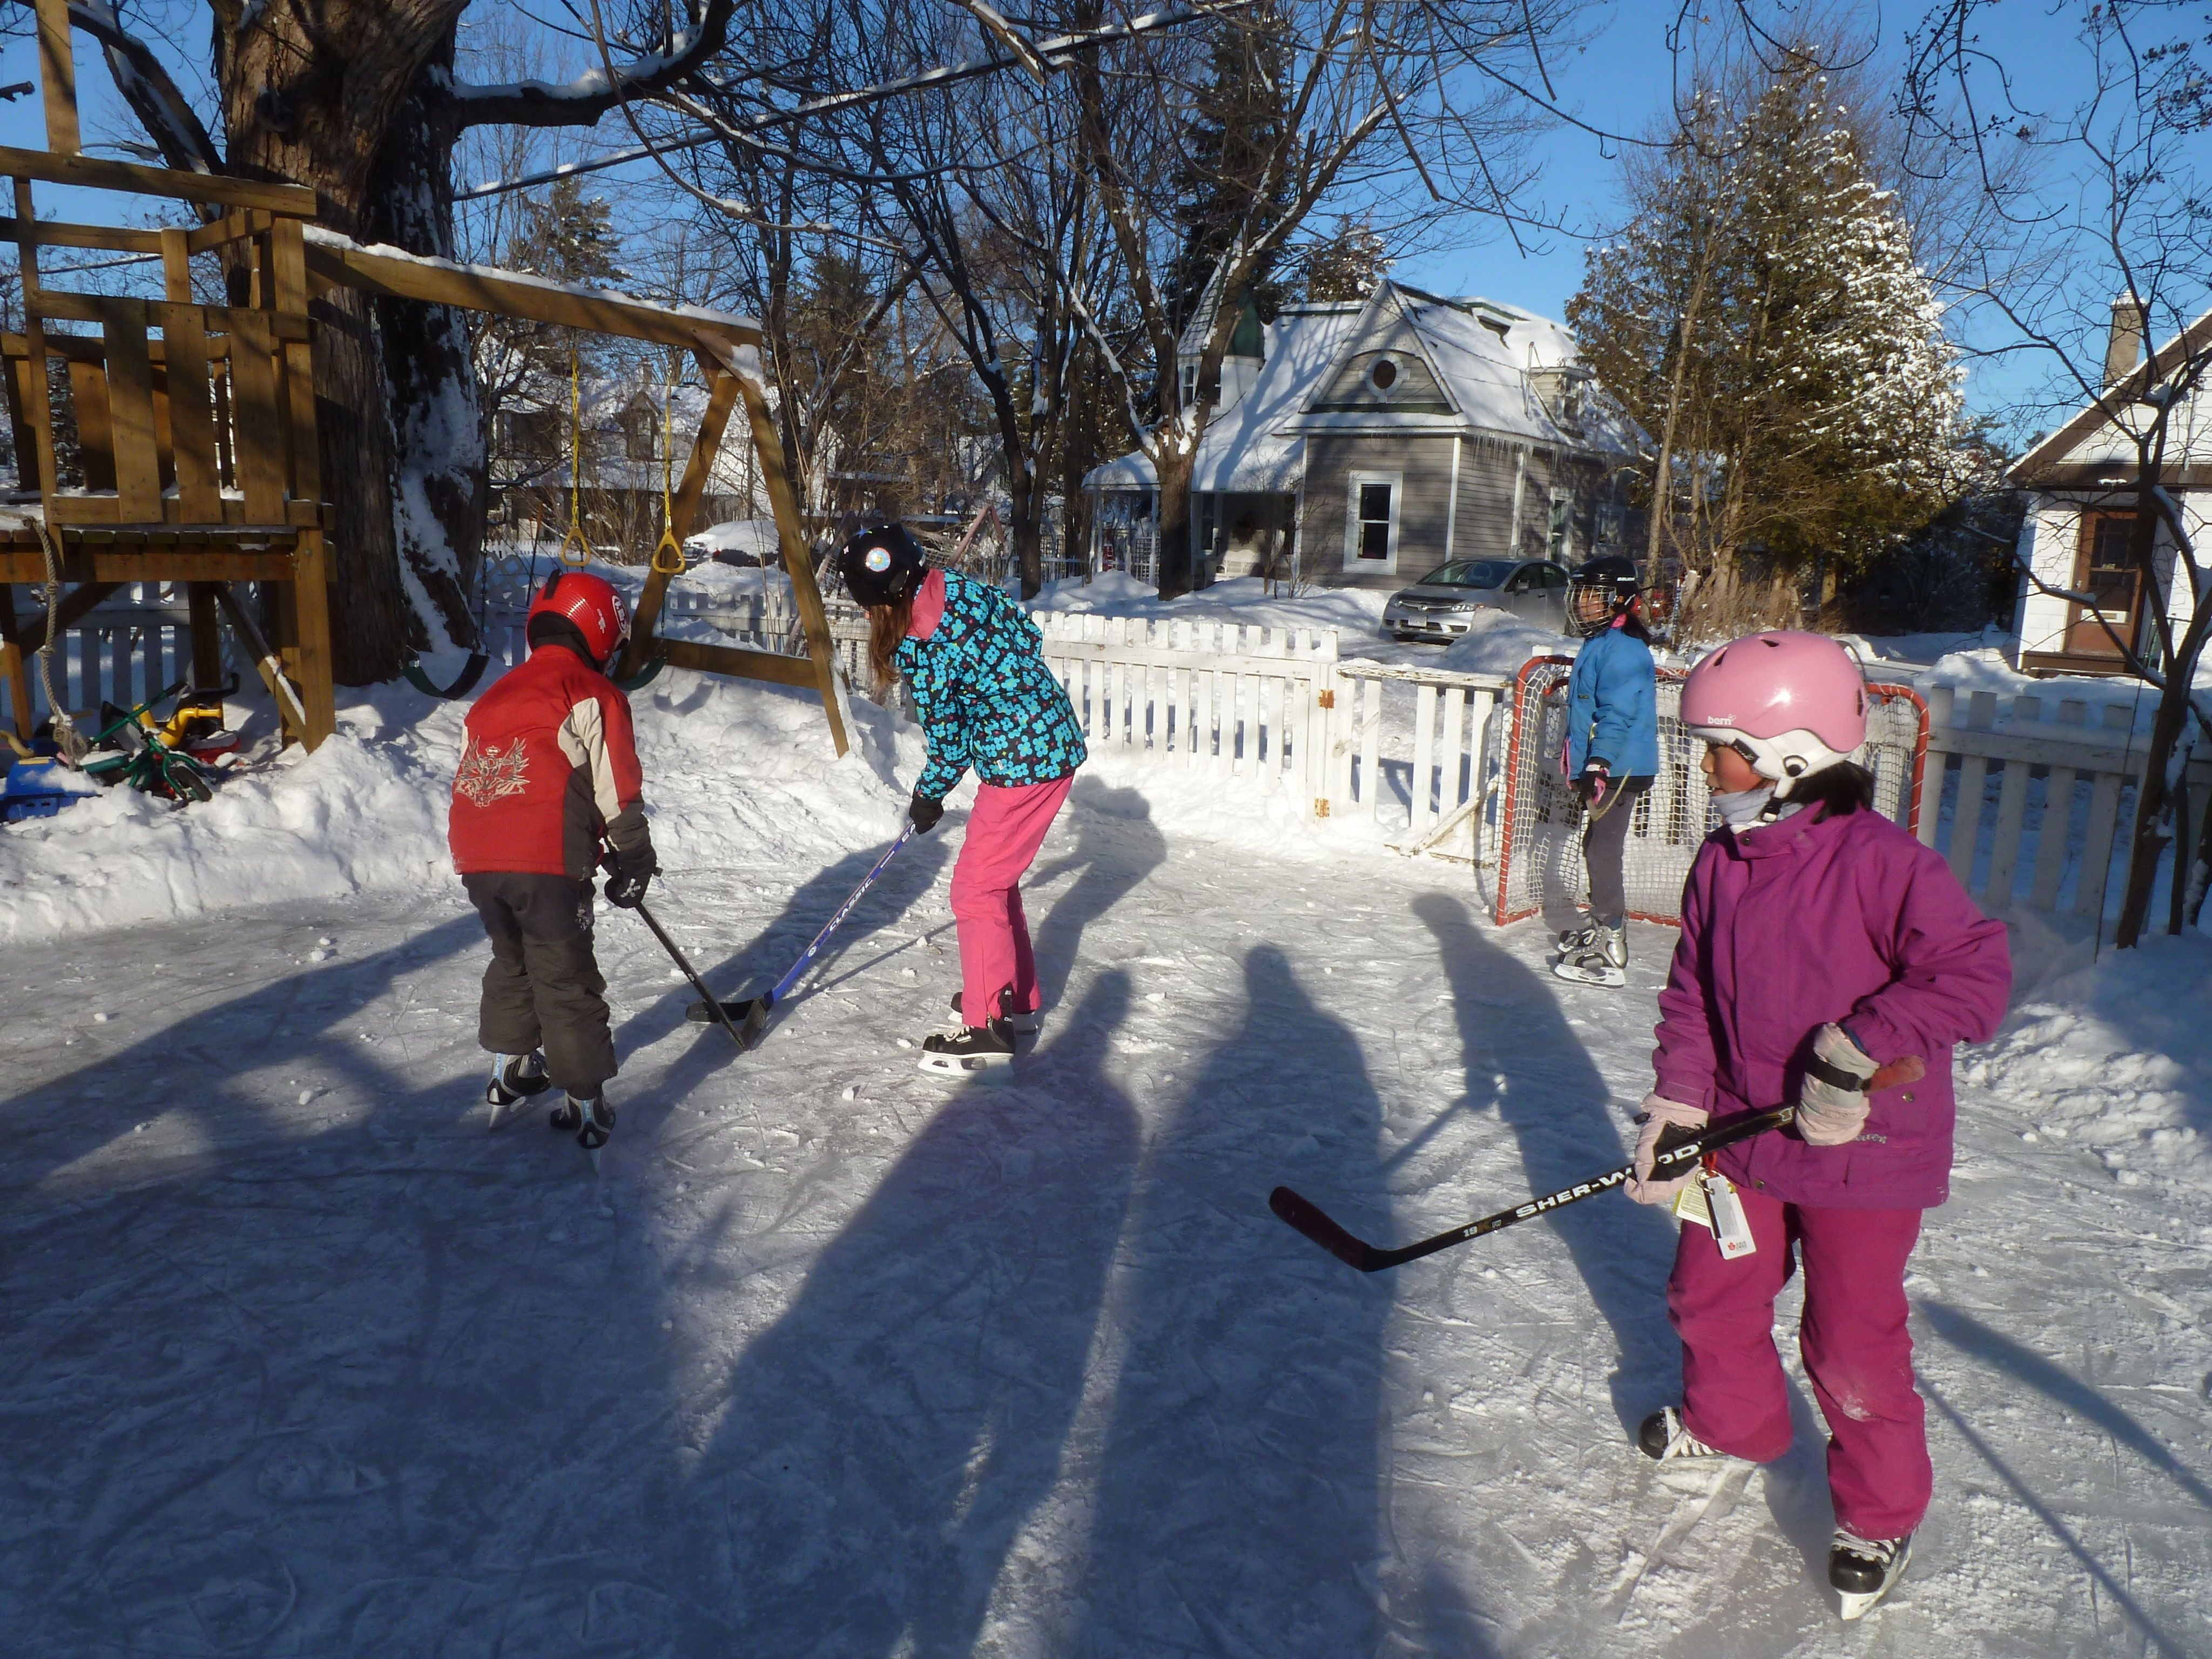 Build An Outdoor Skating Rink Got Questions Get Answers Backyard Ice Rink Outdoor Skating Rink Backyard Rink Best backyard skating rink kit